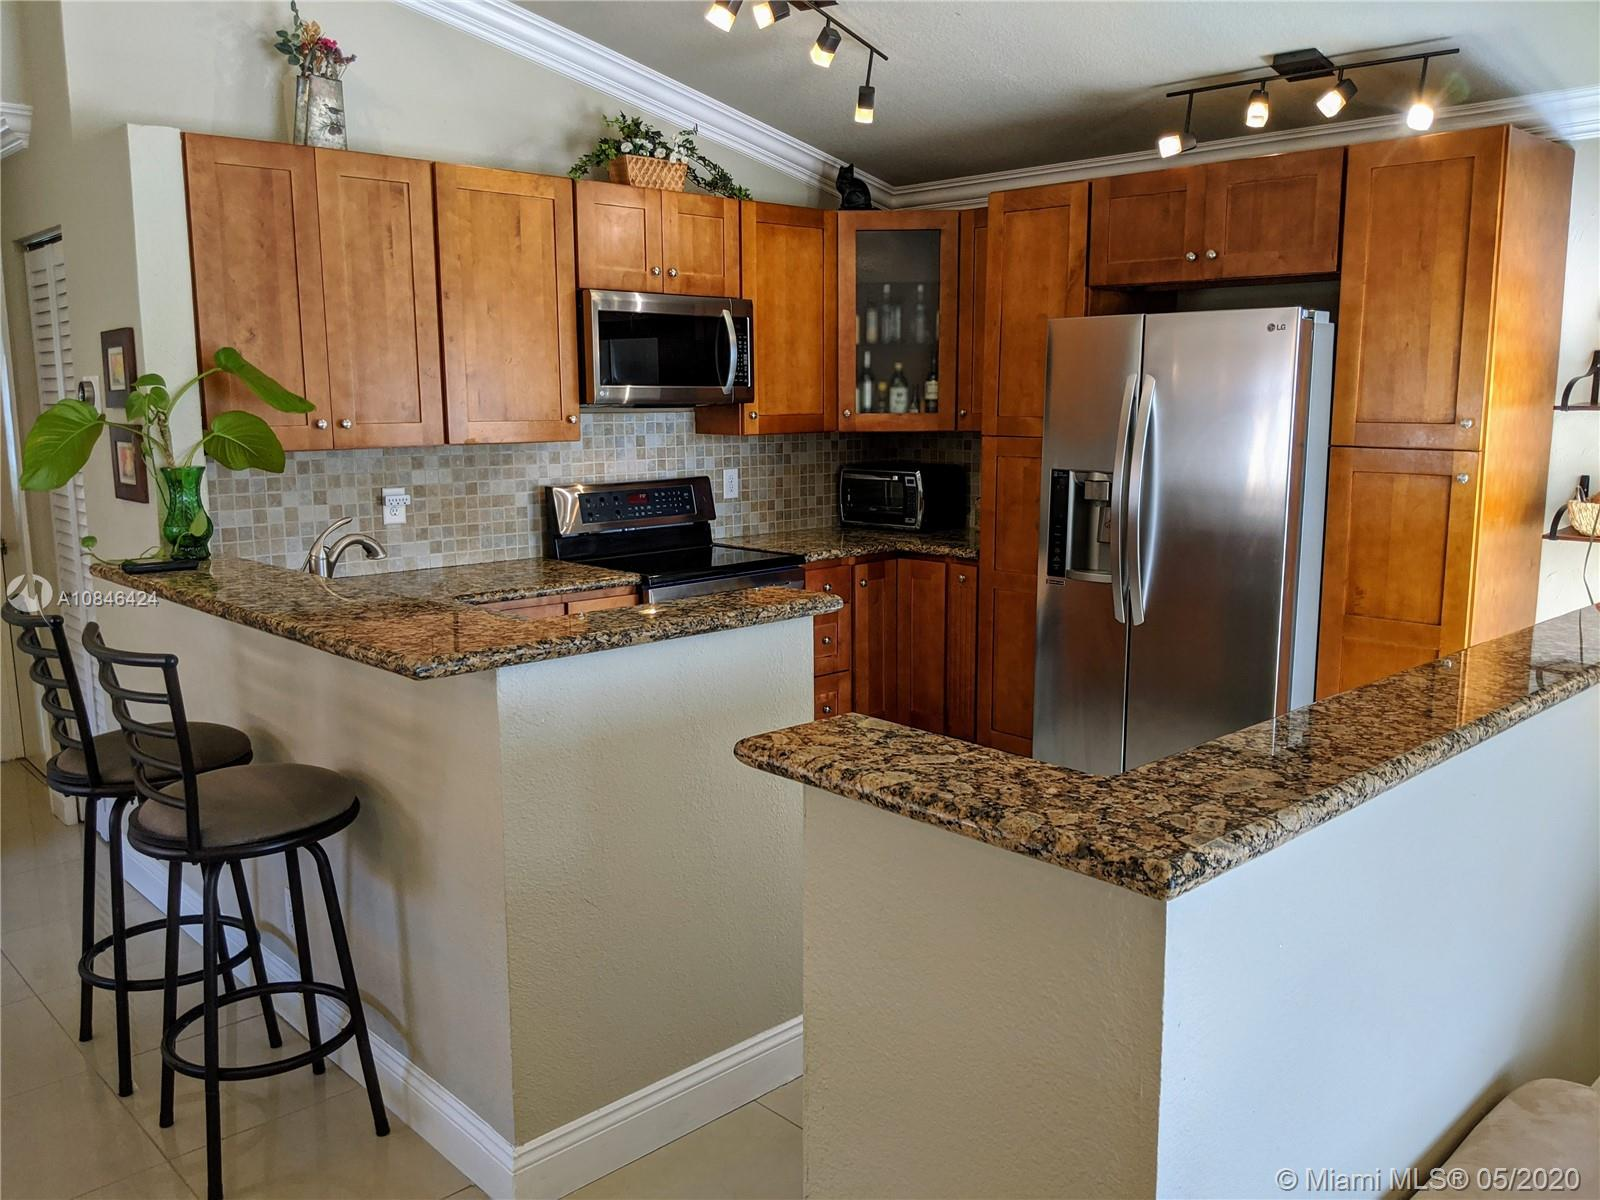 "Enjoy sunsets in beautiful 3/2 home with spectacular wide lake view.  Accordion shutters, gorgeous granite kitchen w/42"" wood cabs, stainless steel appliances.  Updated bath. Open kitchen is fabulous for entertaining with lots of counter space! Garage conversion including A/C, can be restored easily.  Walking distance to Elementary school. Quiet location nestled on the largest lake in Silver Lakes! NO physical showings until 6/7...see video"